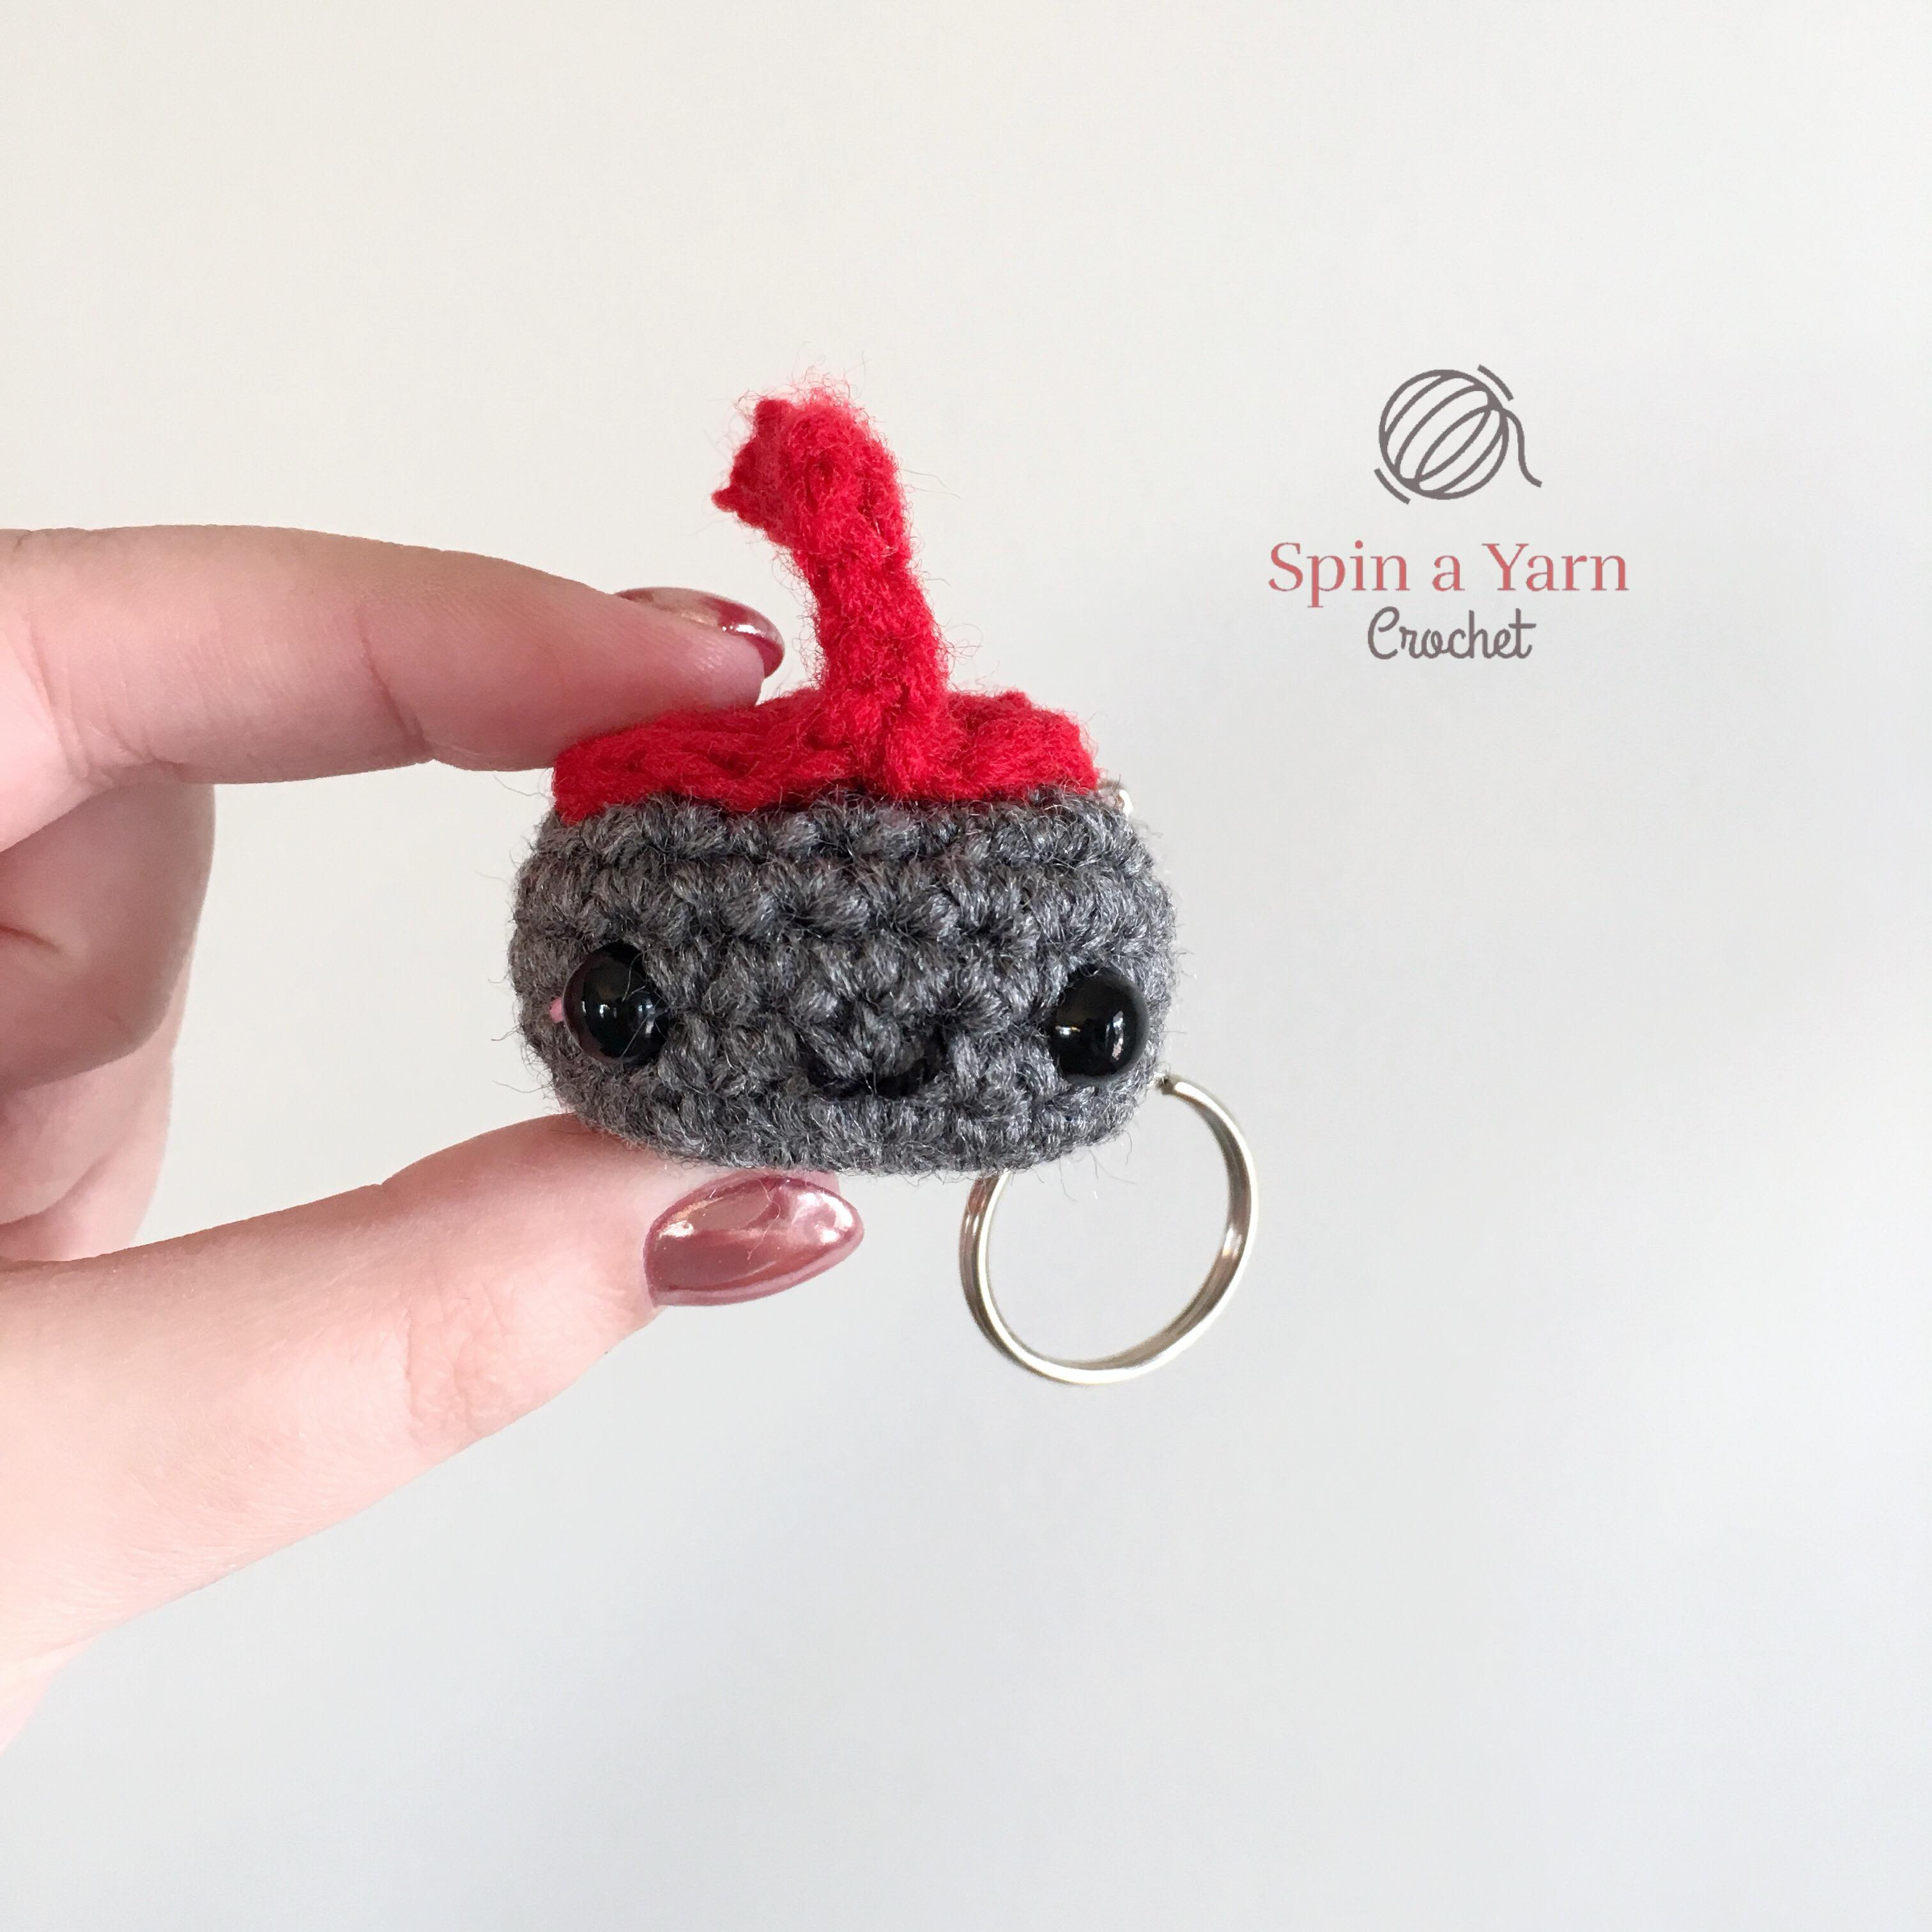 Kawaii Curling Stone Free Crochet Pattern • Spin a Yarn Crochet